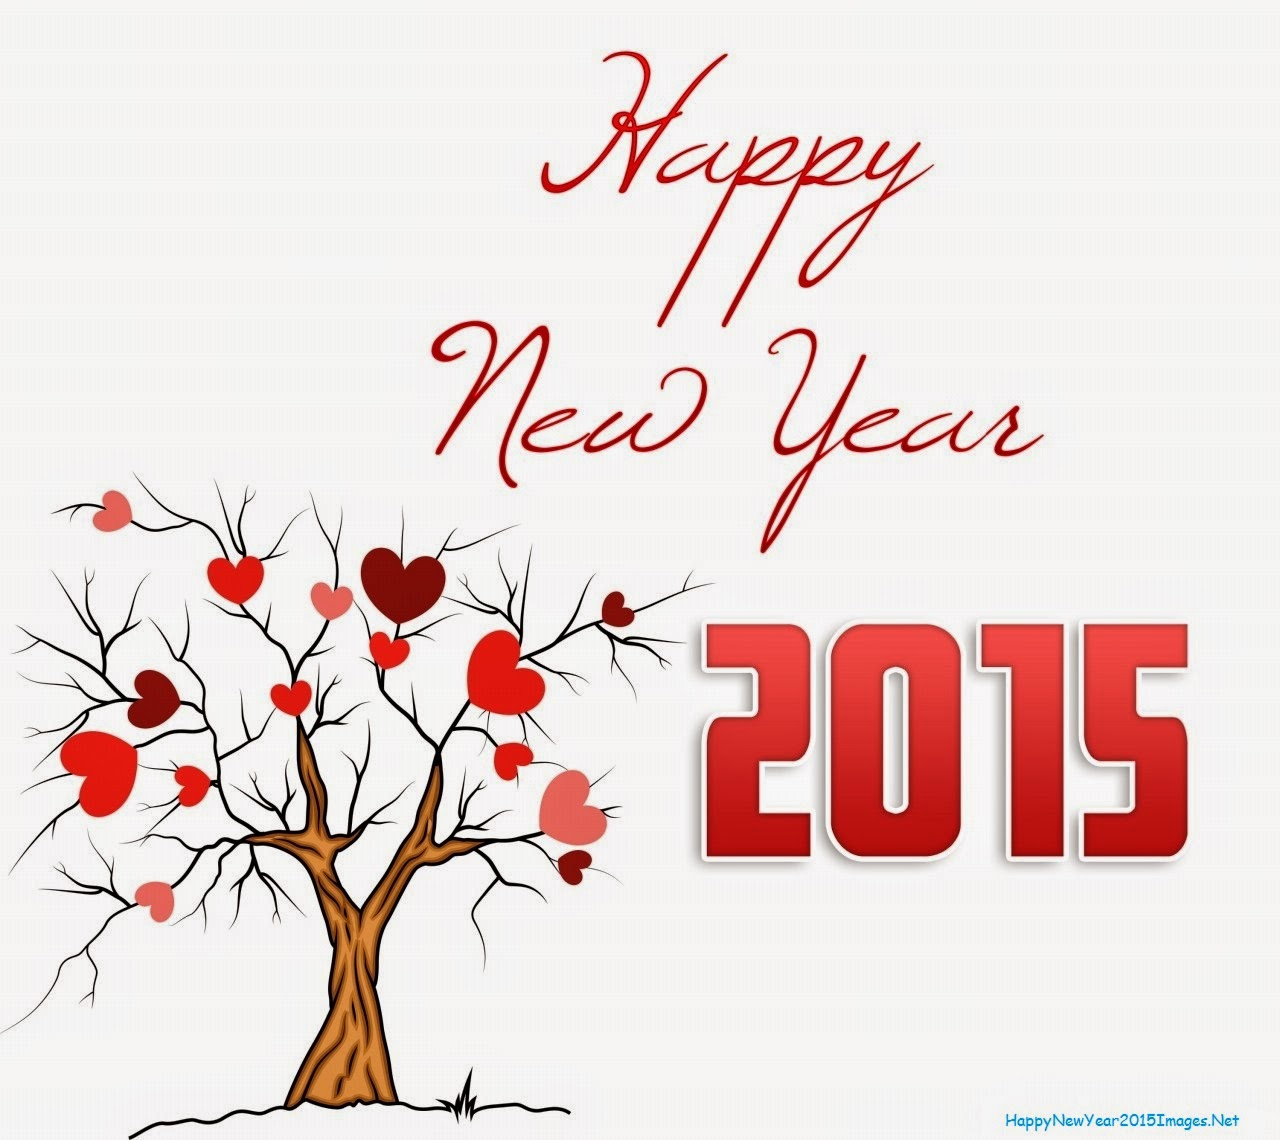 Happy+New+Year+2015+With+Tree+And+Hearts.jpg